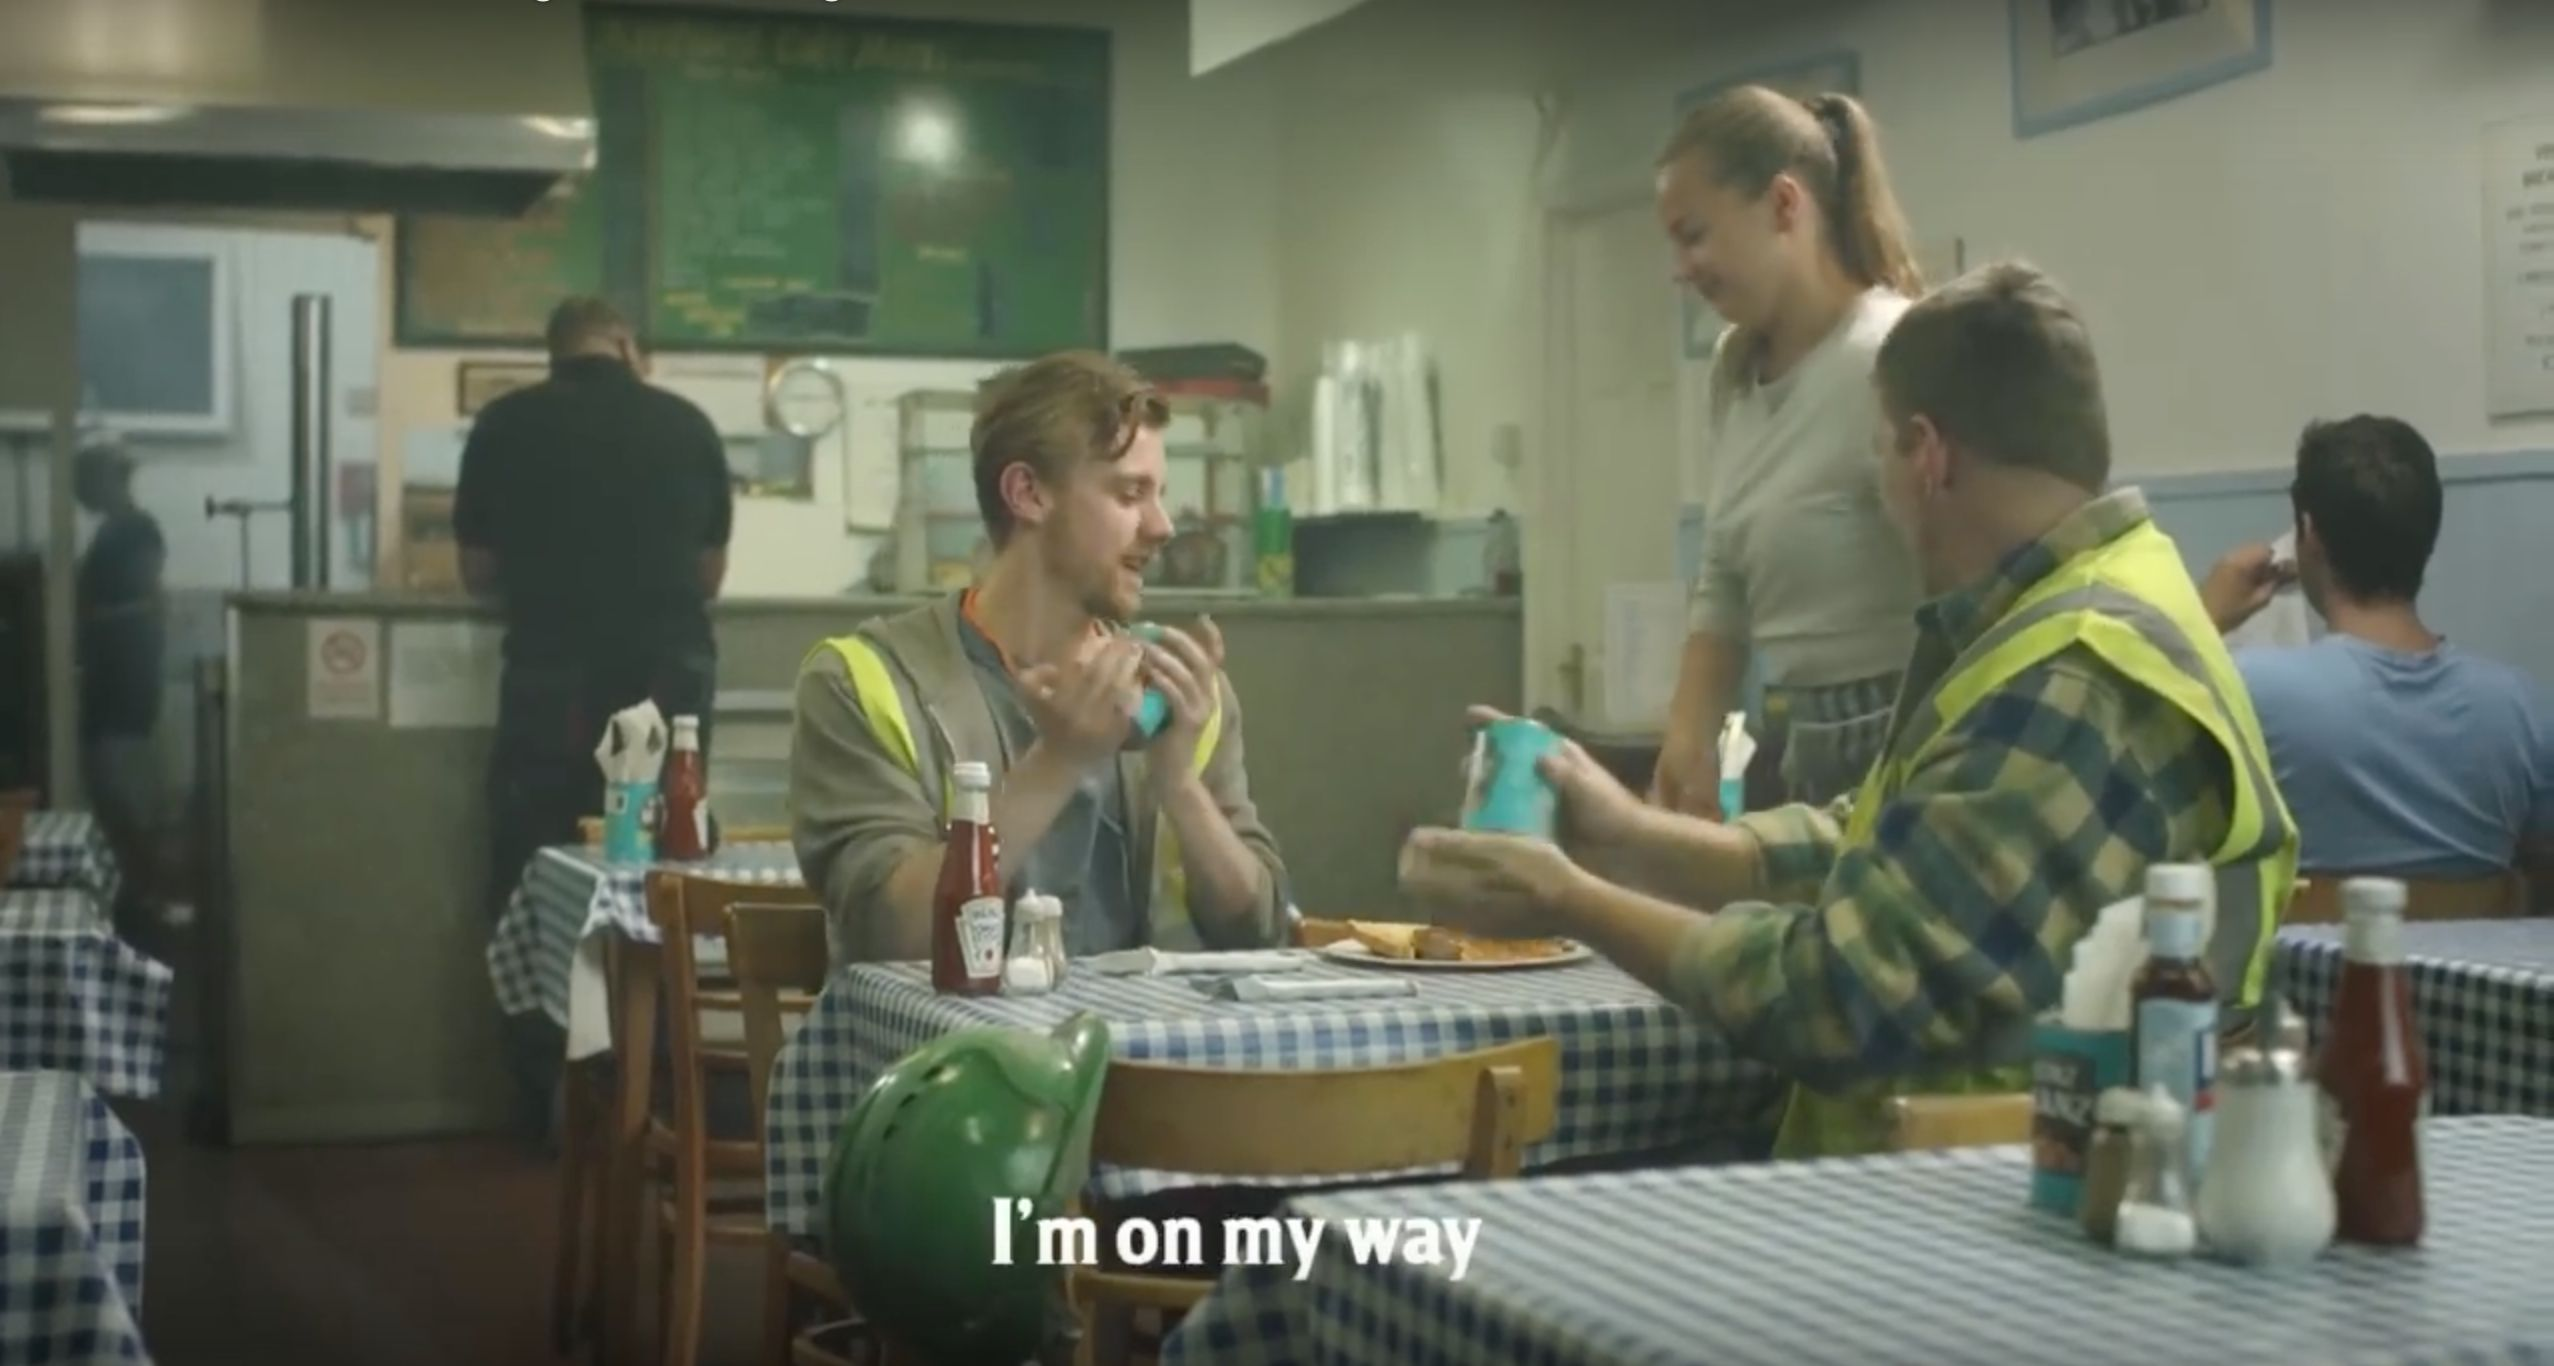 Here's That Banned Heinz Advert Deemed To Encourage 'Unsafe' Behaviour